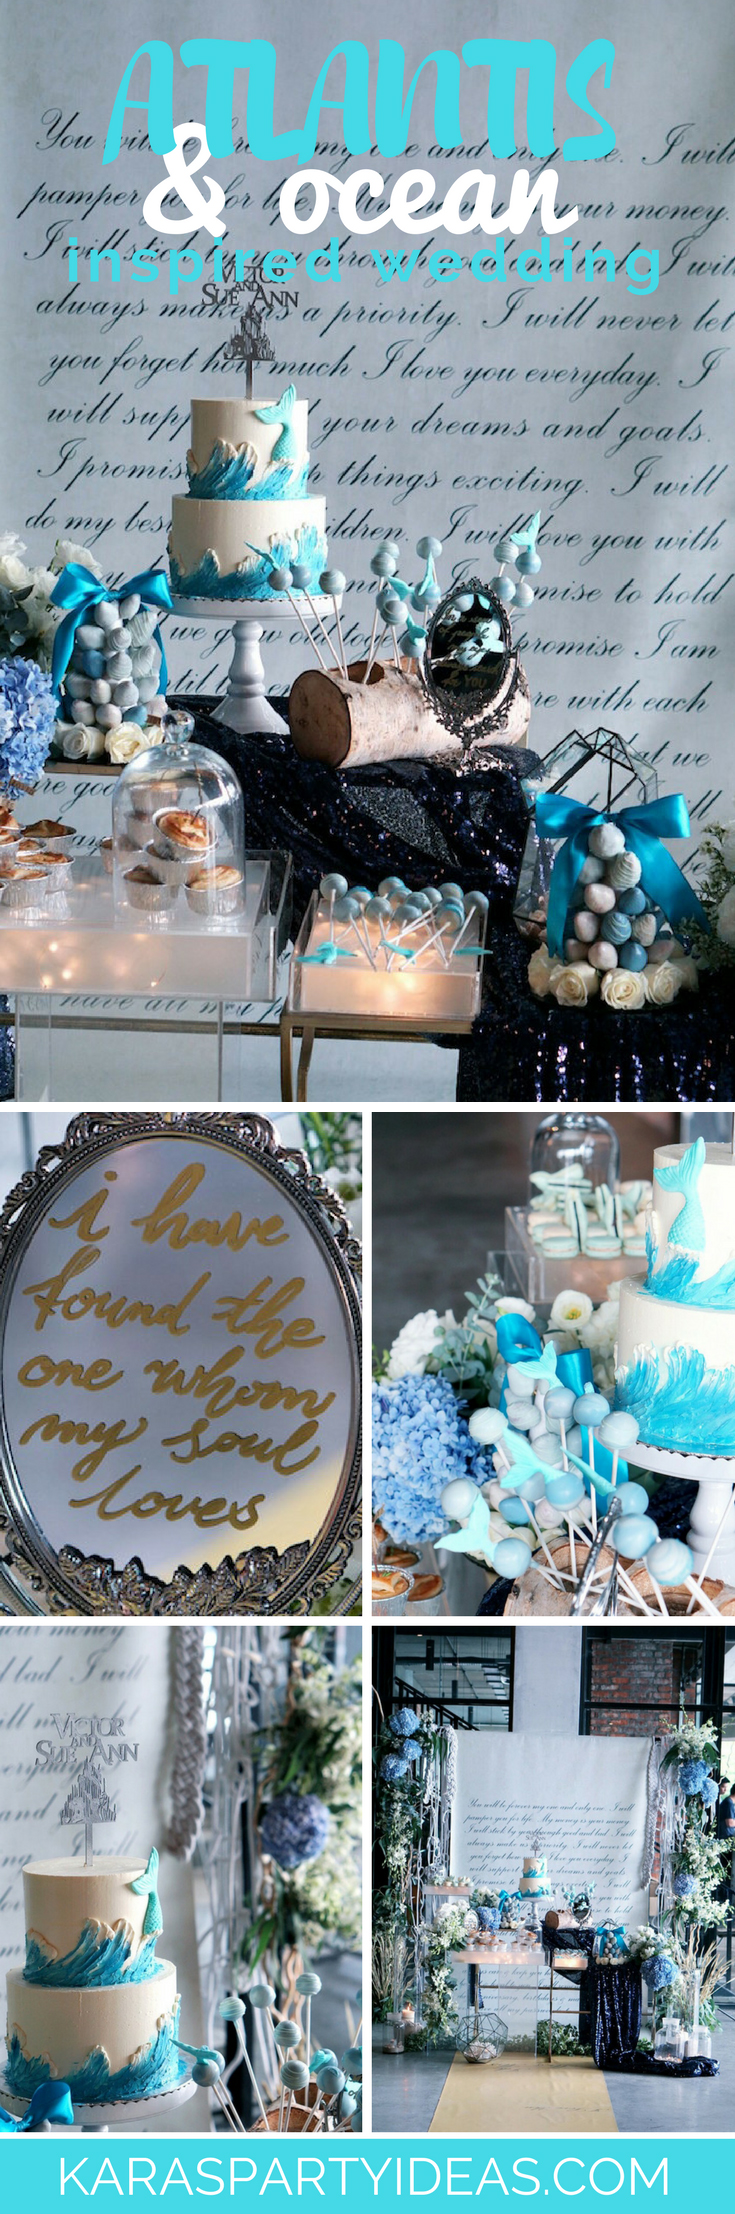 Atlantis and Ocean Inspired Wedding via Kara's Party Ideas - KarasPartyIdeas.com